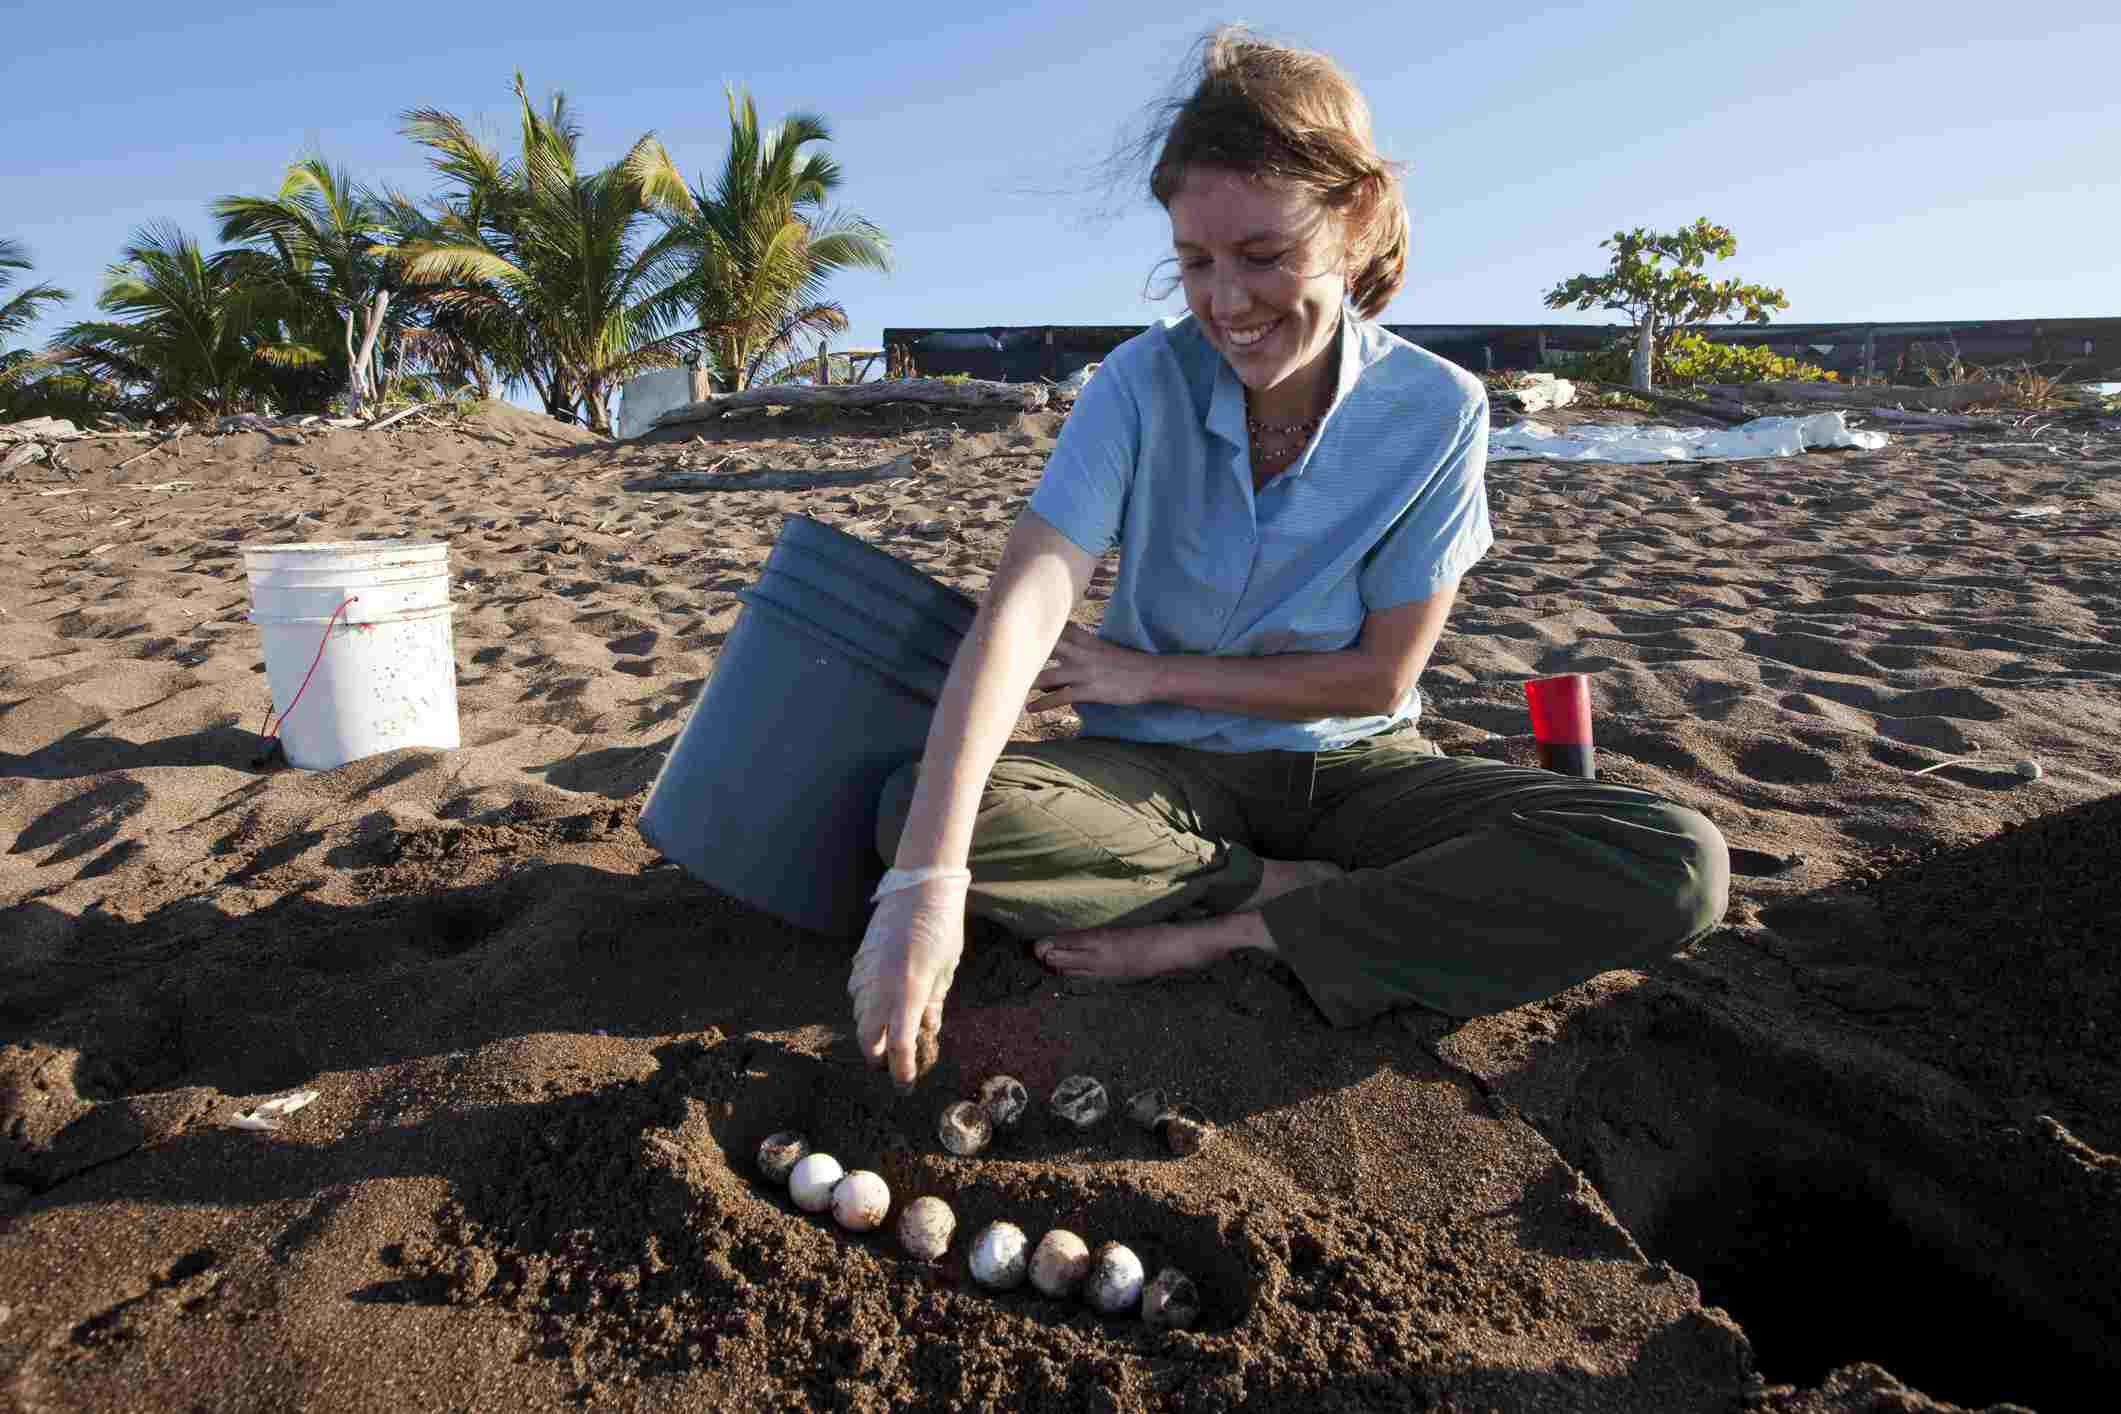 A volunteer works with sea turtle eggs on a beach